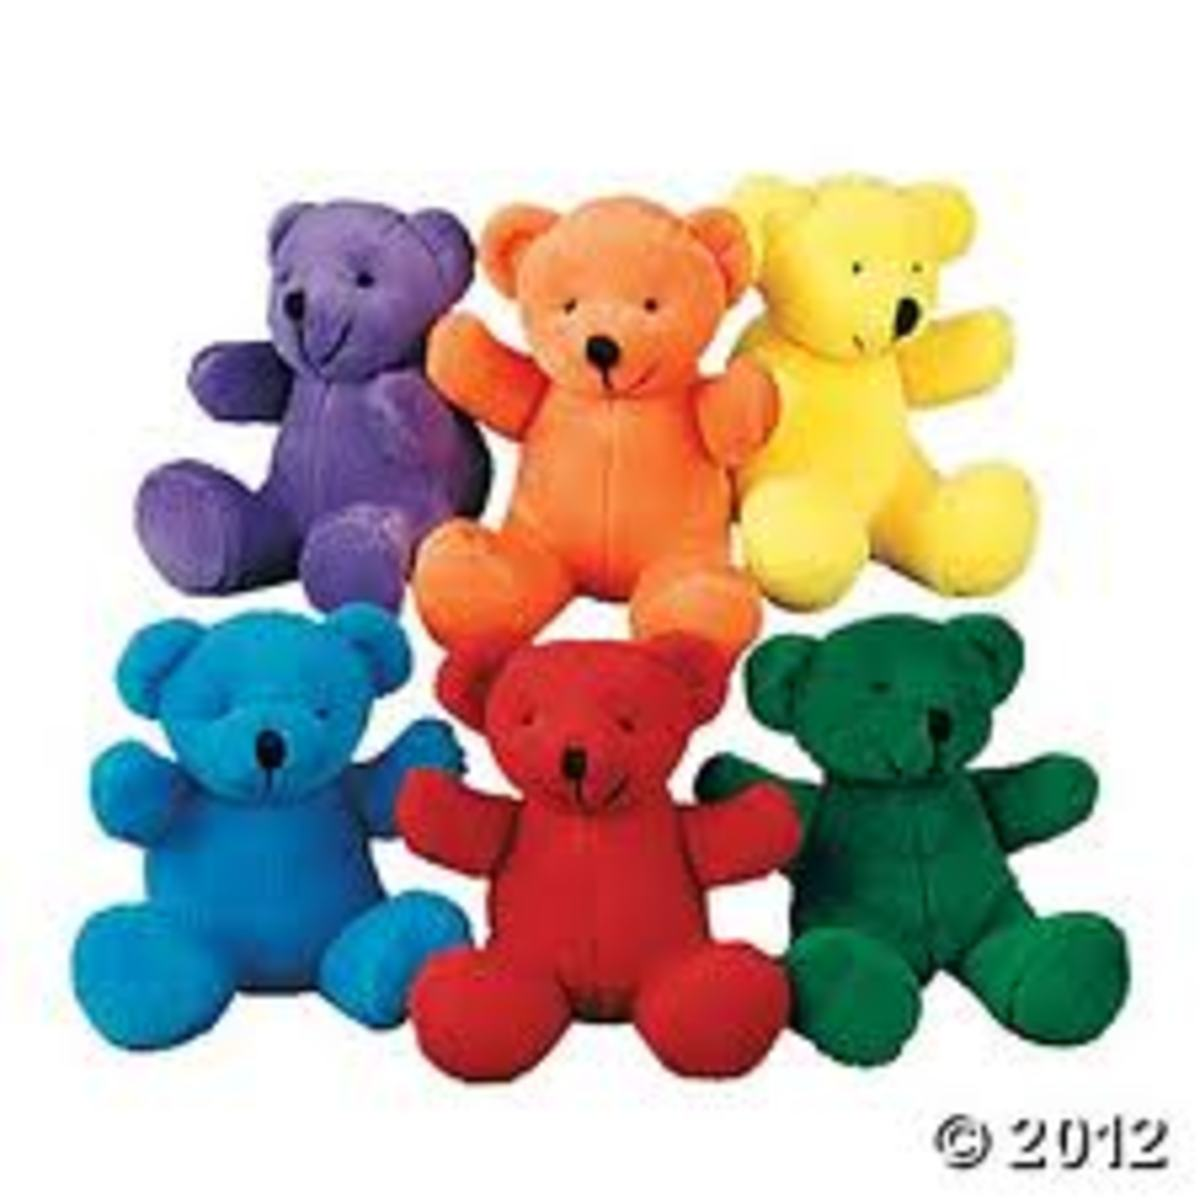 COLORFUL BEARS FROM THE ORIENTAL TRADING COMPANY